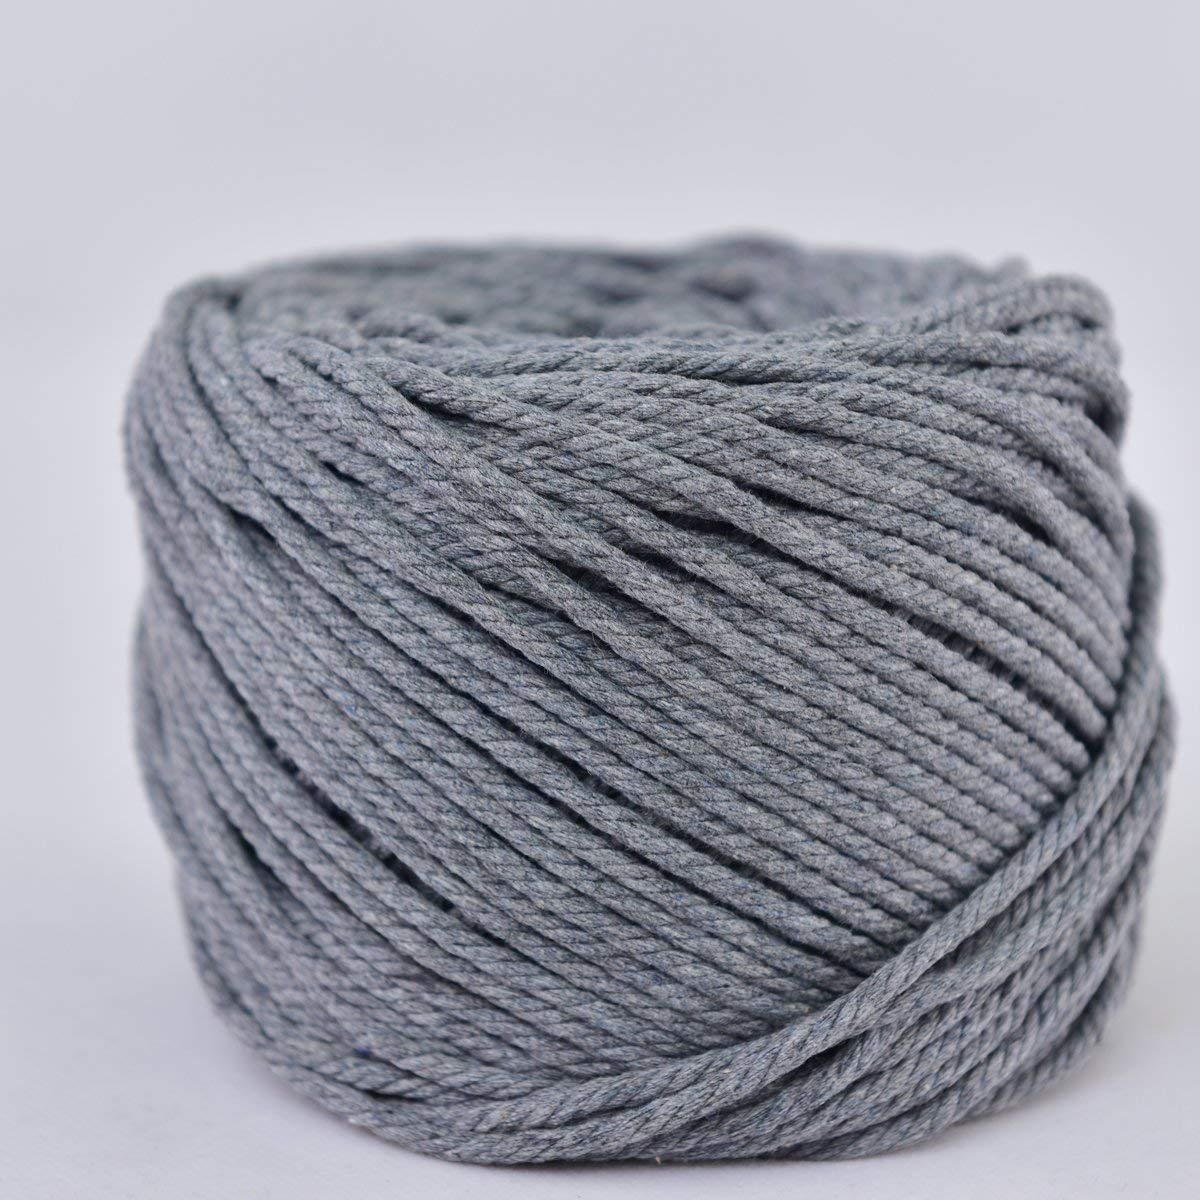 (Linen Grey, 3mm x 100m(About 109 yd)) Handmade Decorations Natural Cotton Bohemia Macrame DIY Wall Hanging Plant Hanger Craft Making Knitting Cord Rope Natural Color Beige Macramé Cord